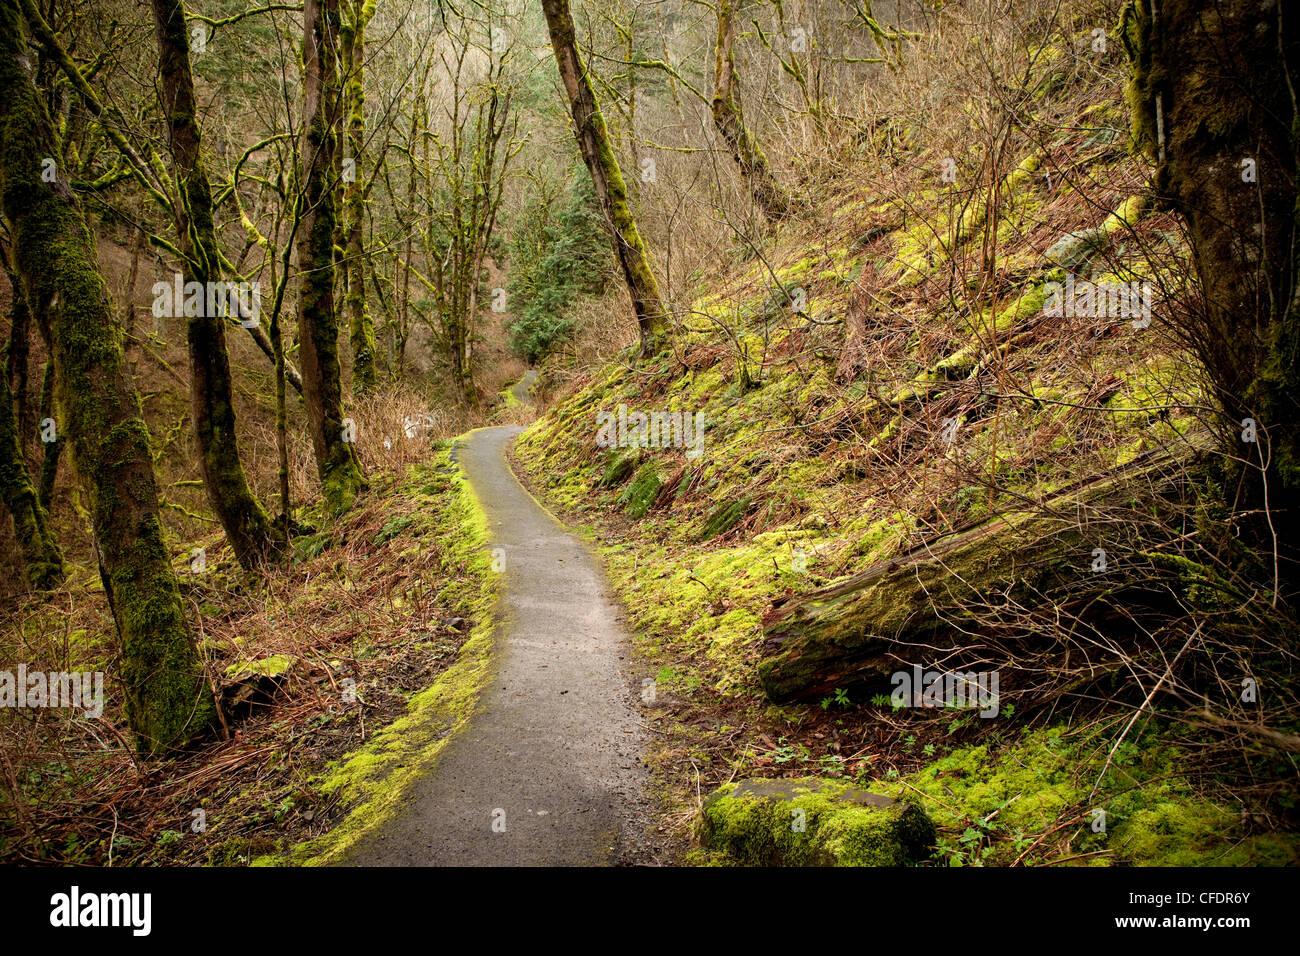 Path leading through a mossy forest. - Stock Image